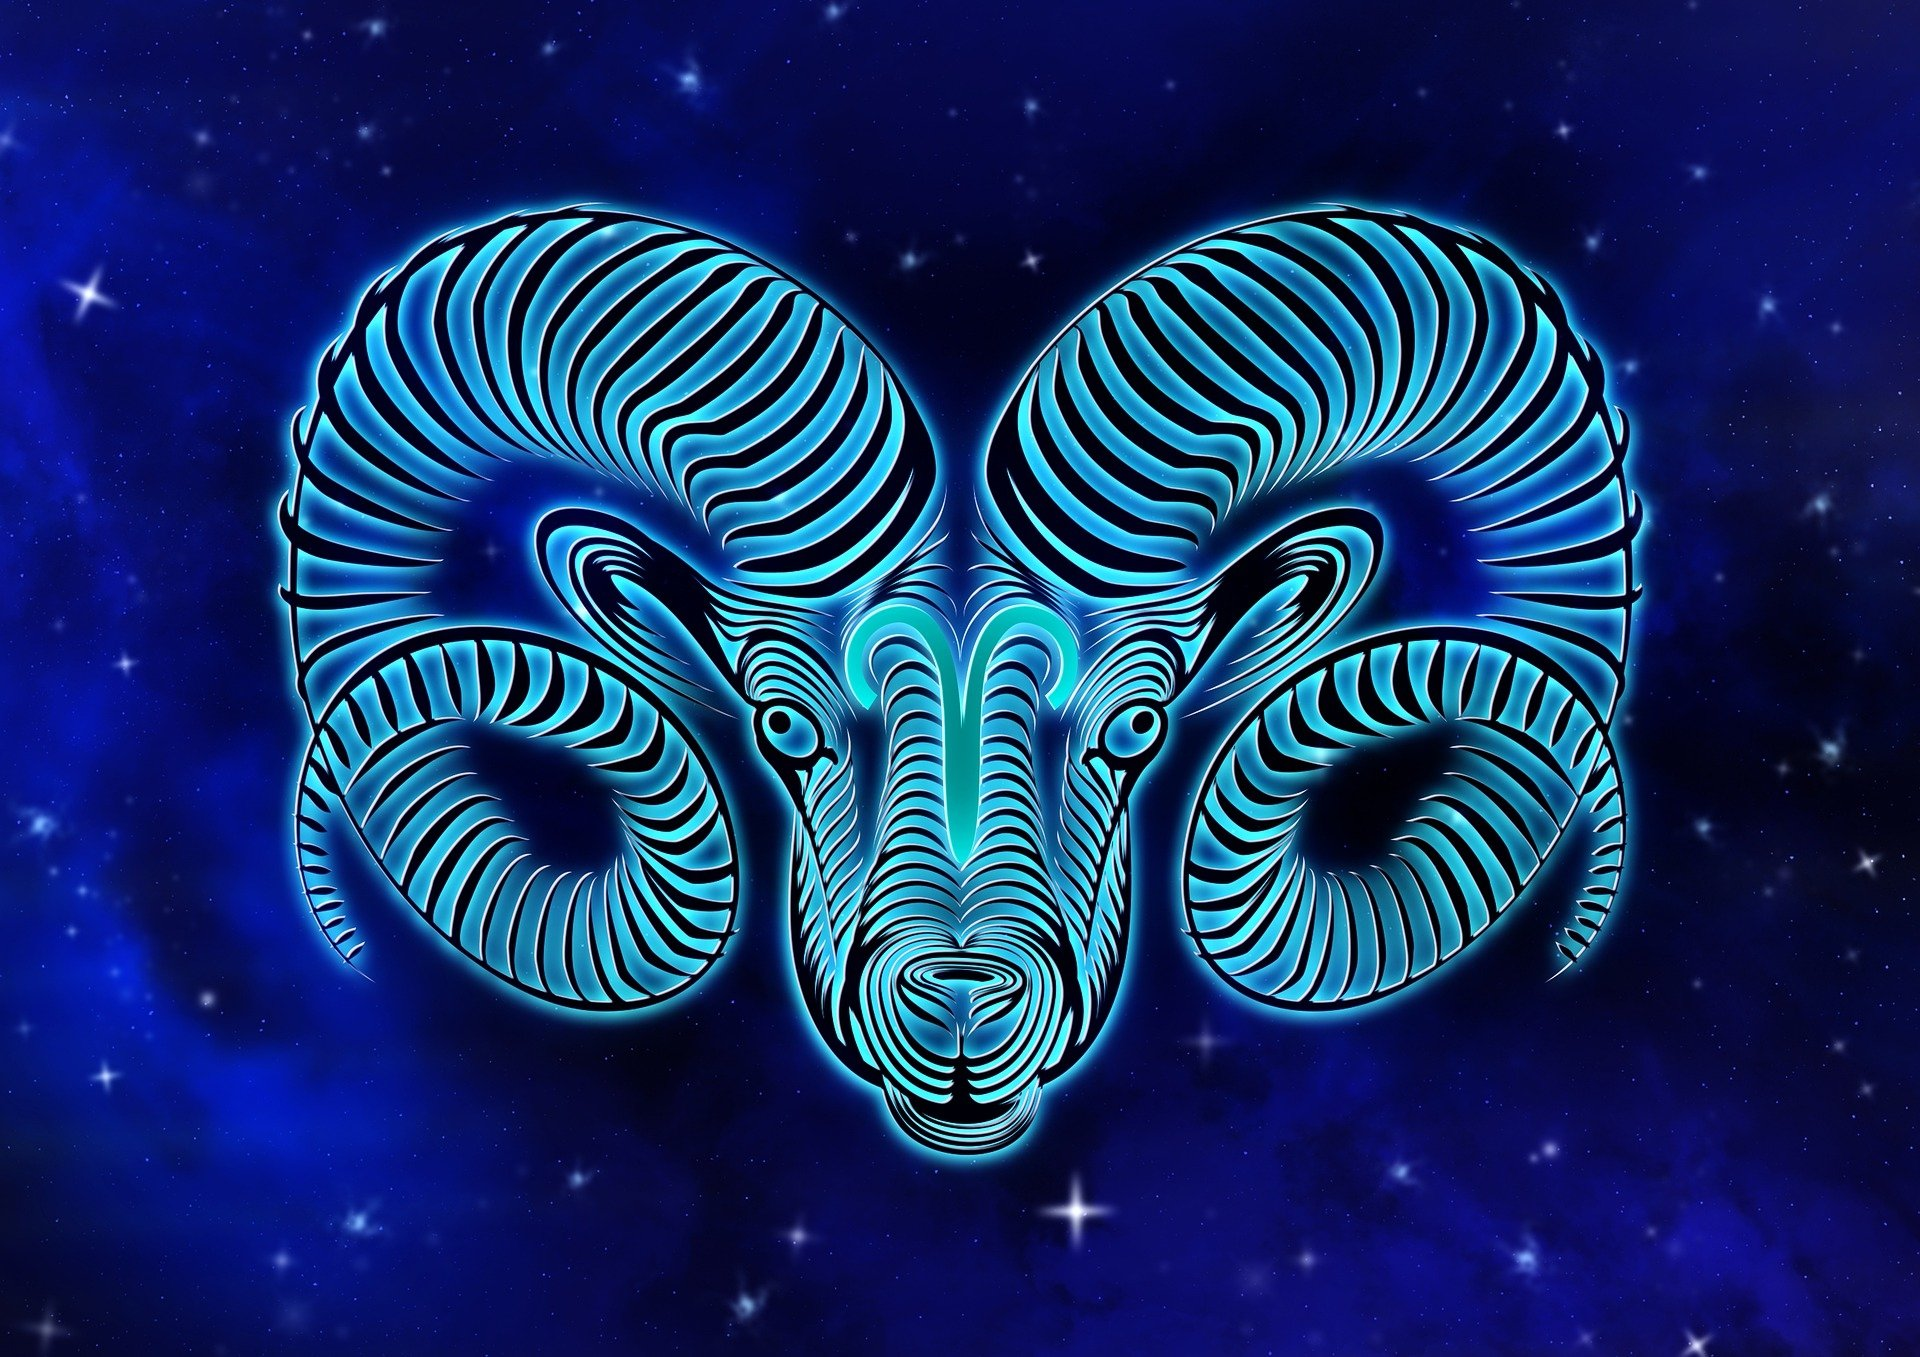 Blue Aries Ram Zodiac HD Wallpaper Background Image 1920x1357 1920x1357